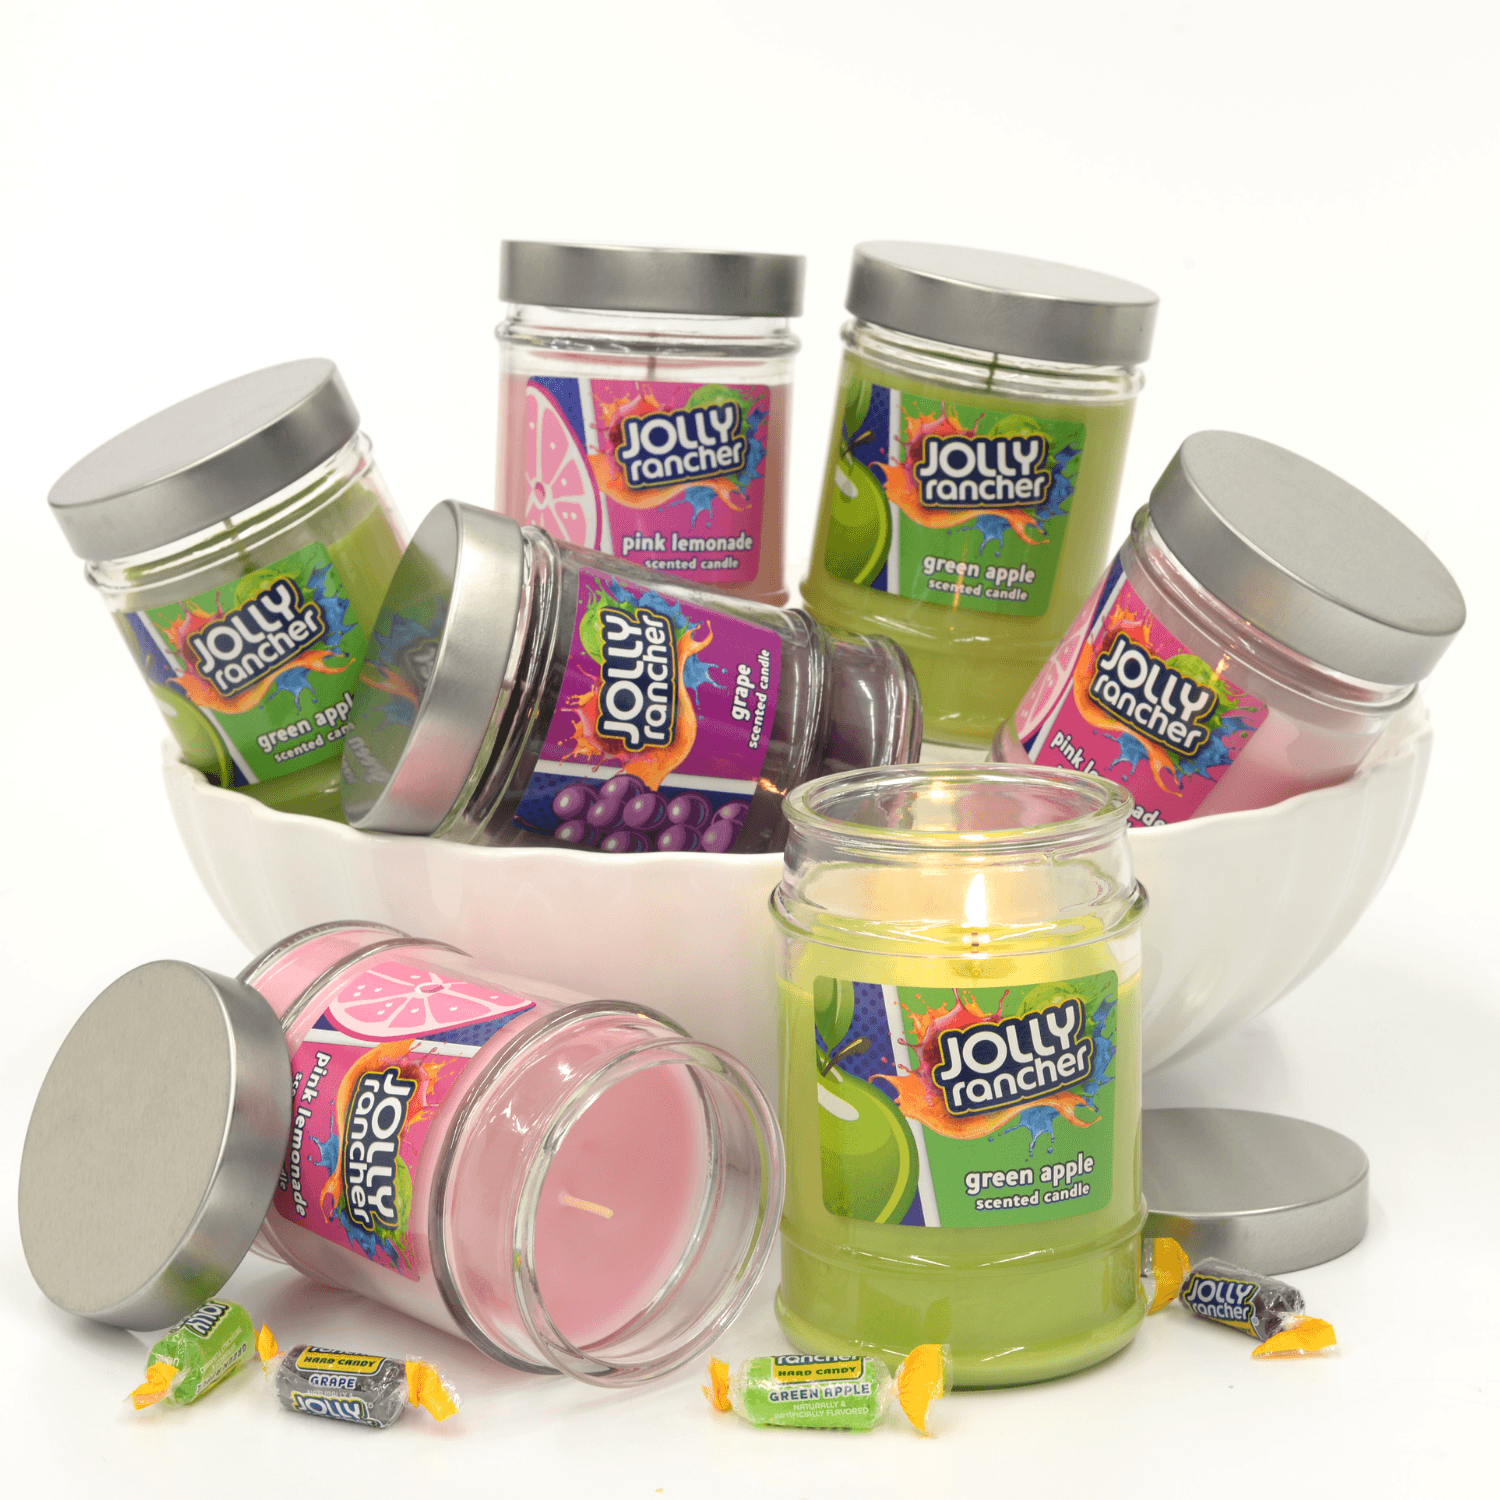 Jolly Rancher Pink Lemonade Scented Canister Jar Candle Candles Candlemart.com $ 5.99